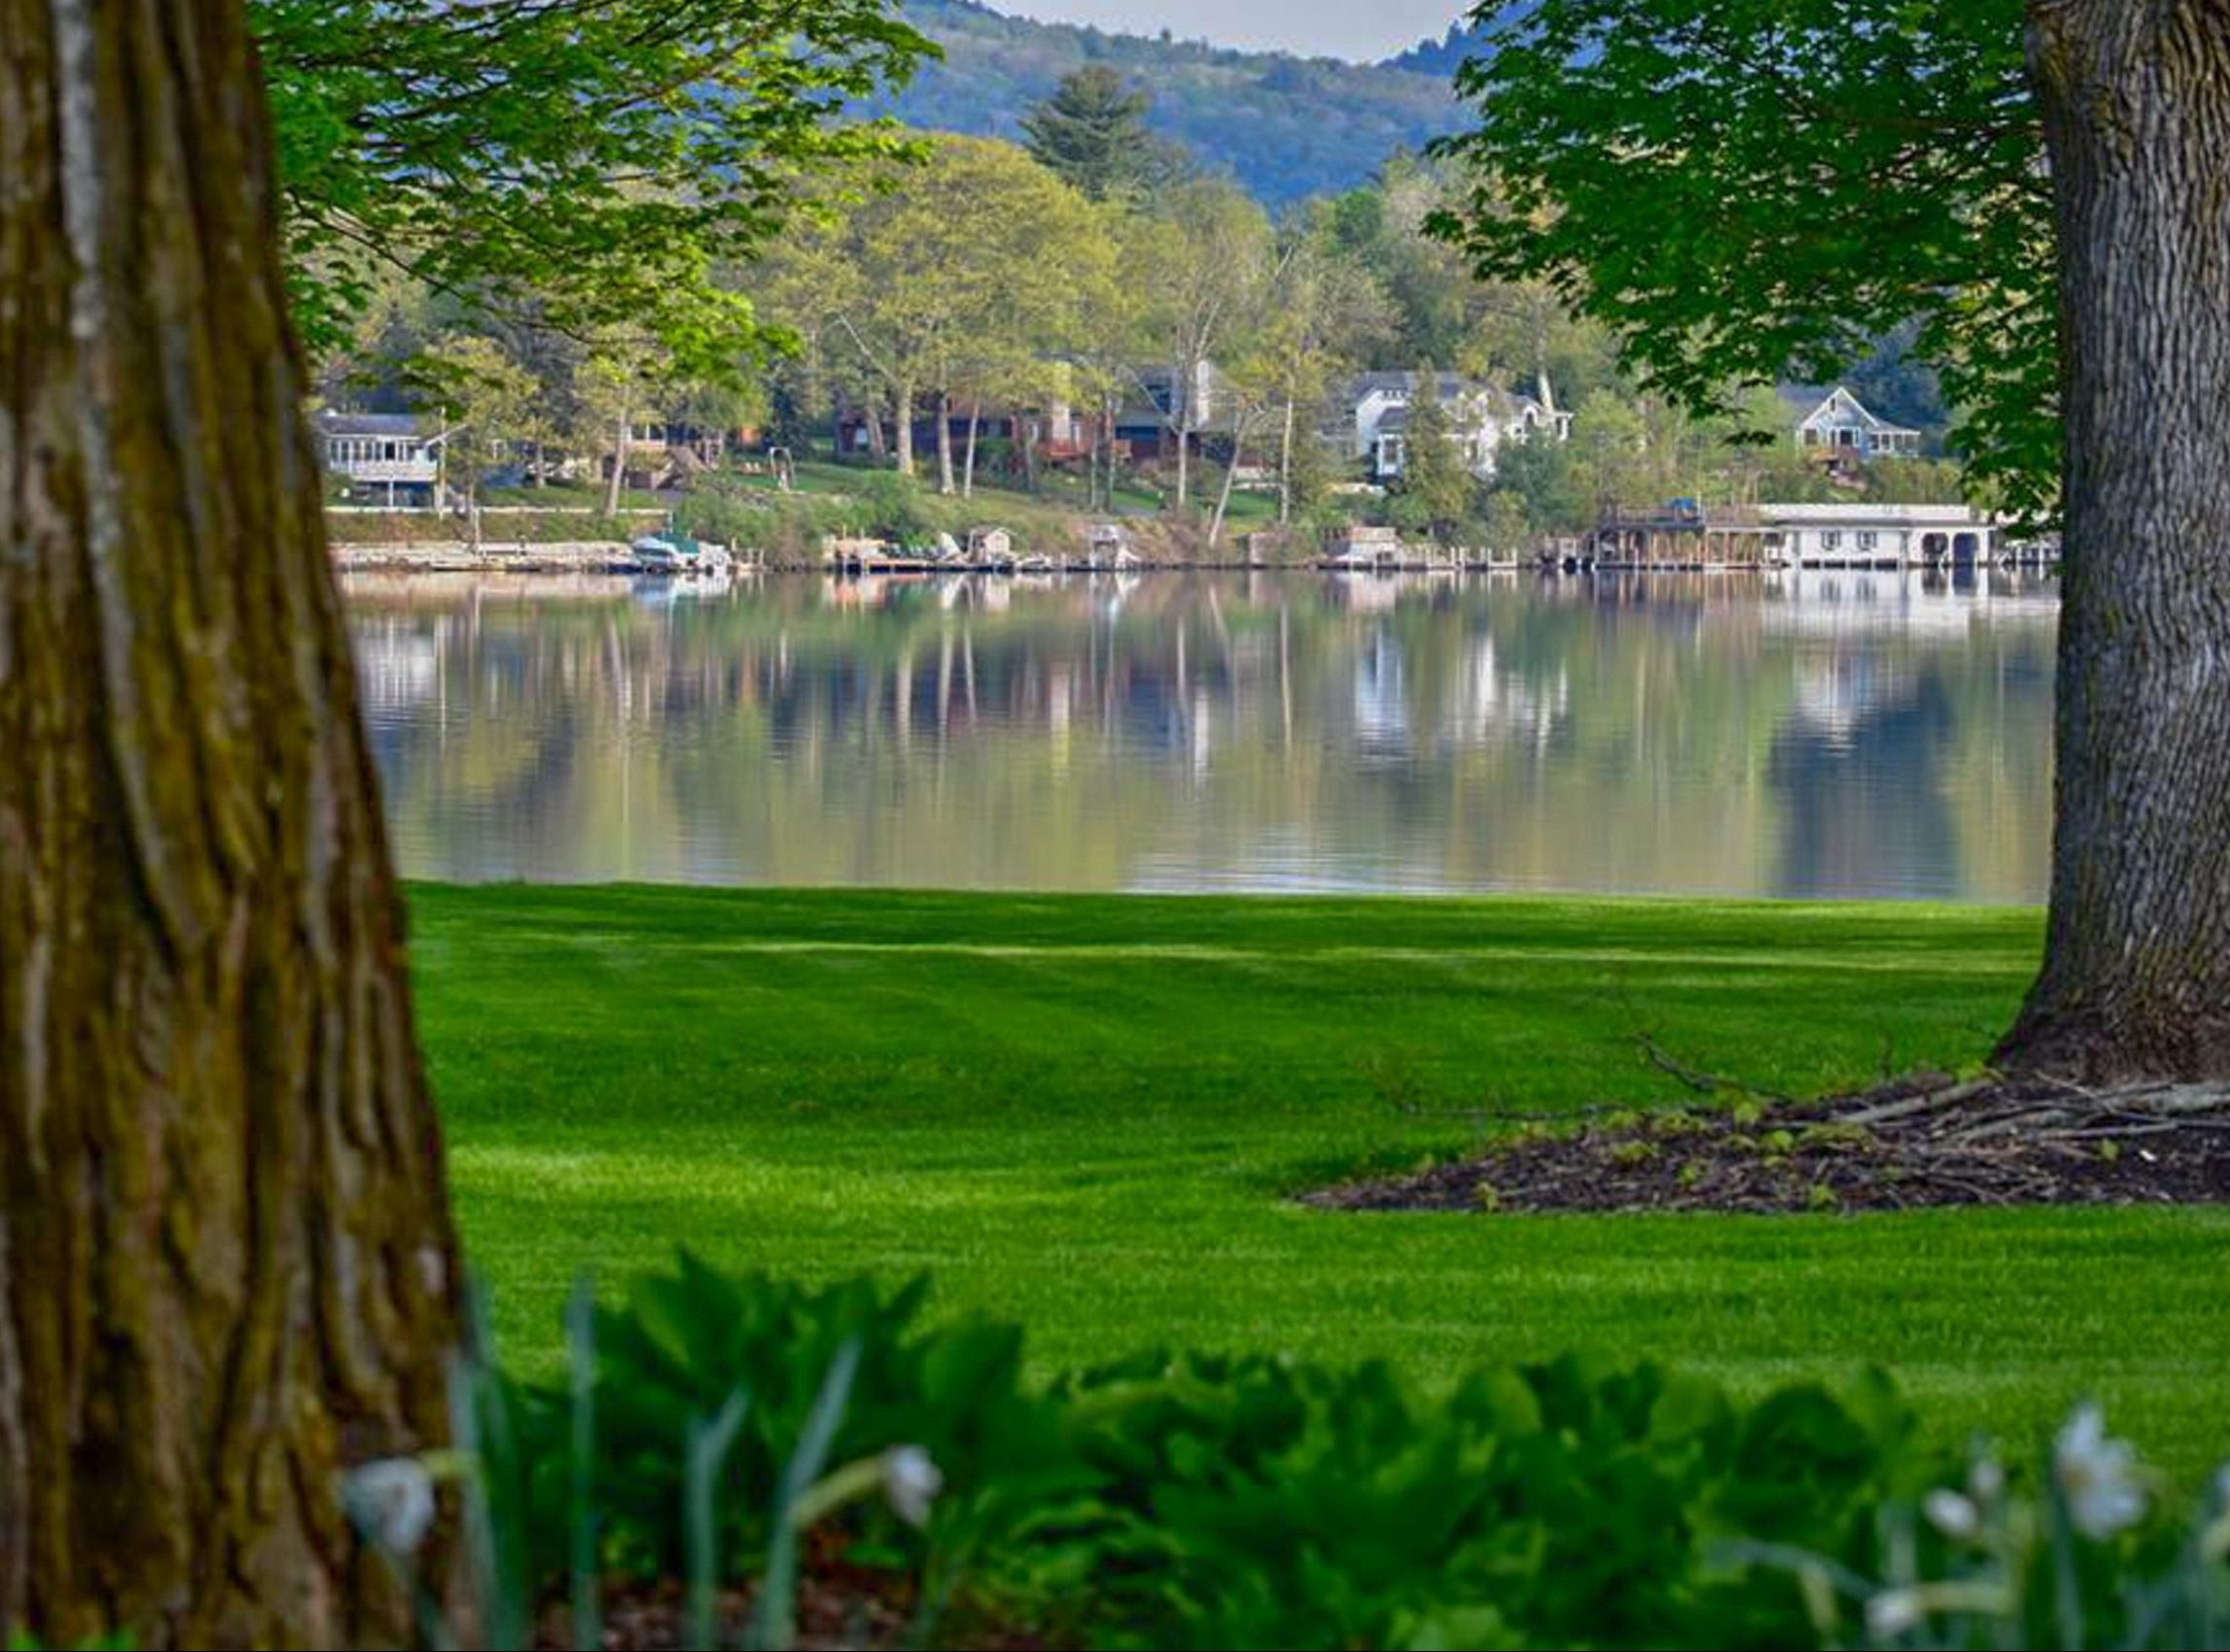 Lake George vacation cabin rentals directly on the lake at Takundewide Cottages on Lake George